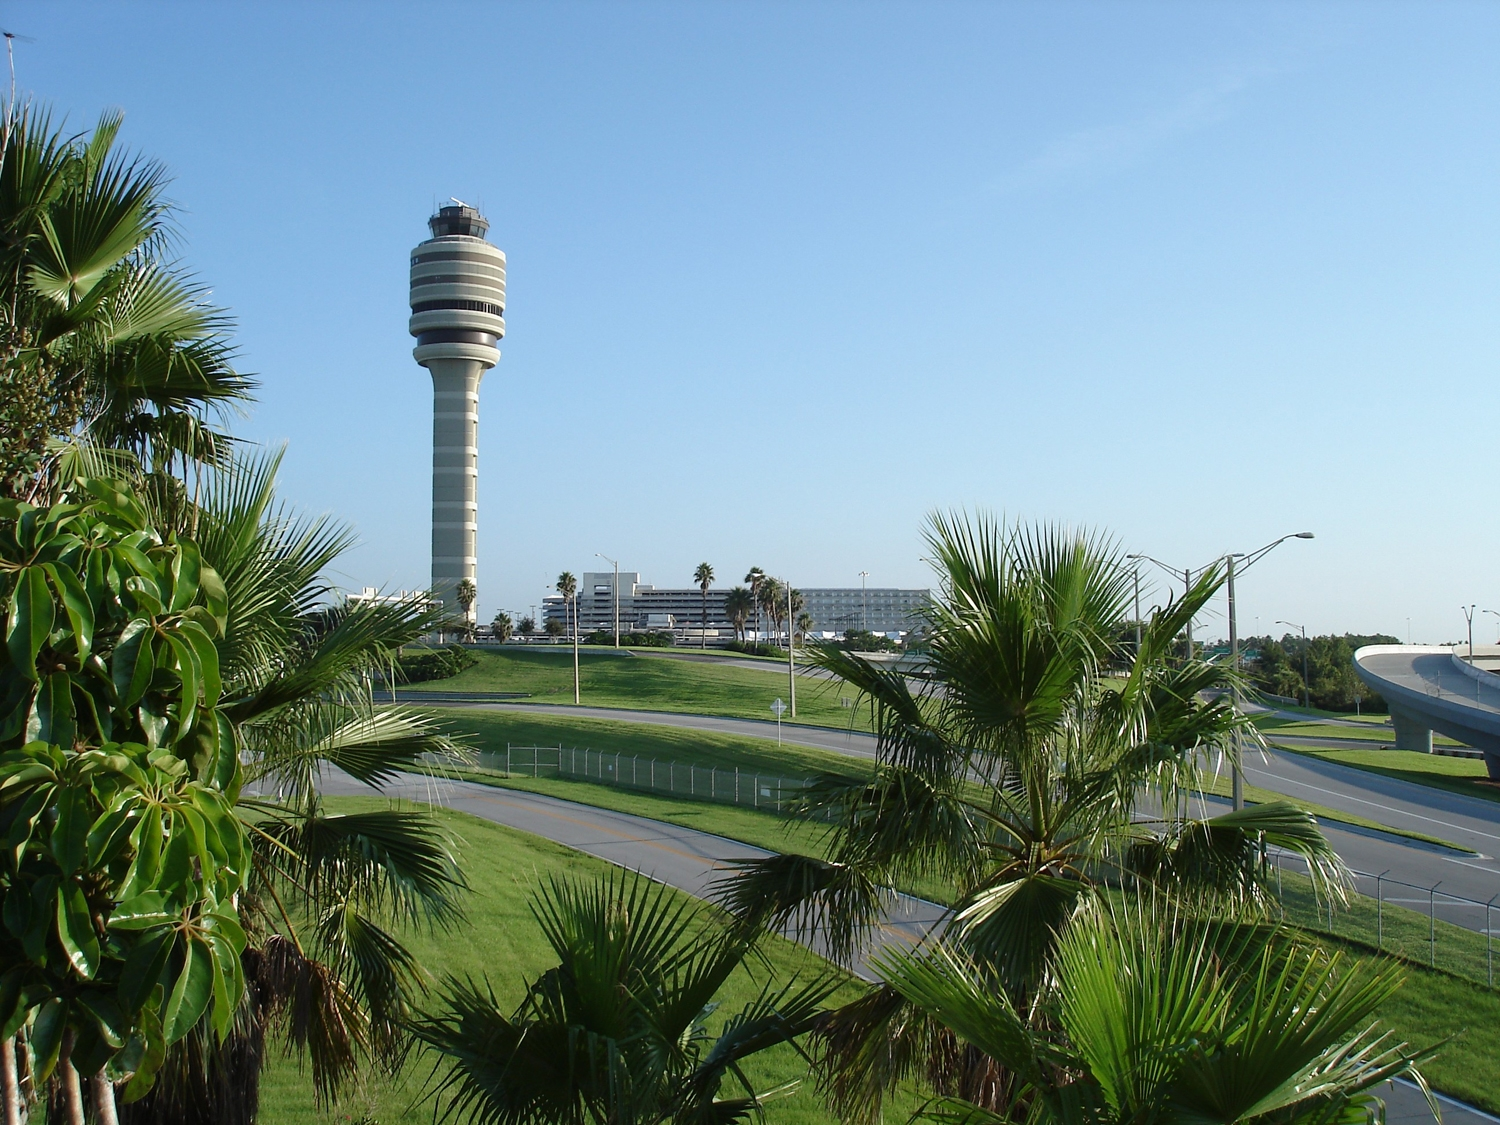 FAA Tower/Terminal Through Palms